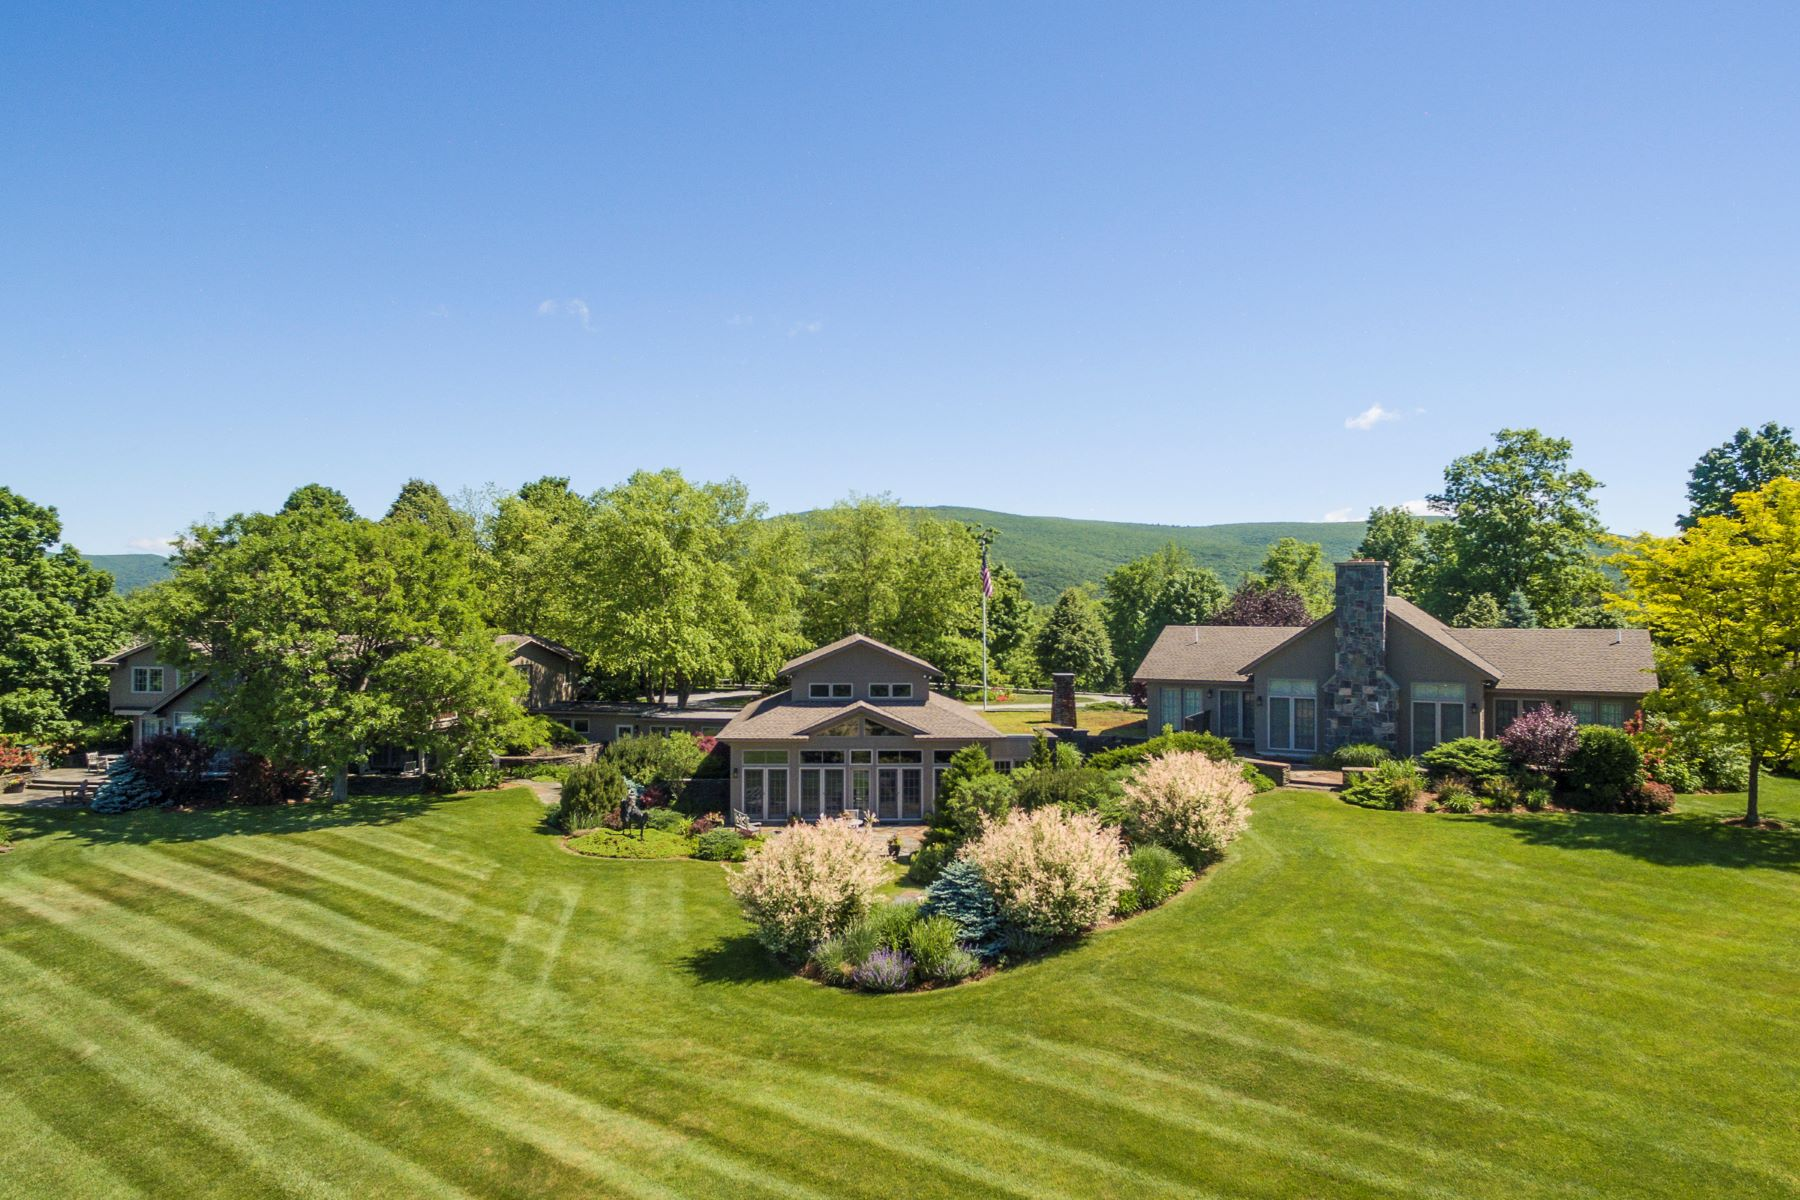 Single Family Home for Sale at Live your dream in this stunning 11.7 acre country estate with indoor pool and t 465 Stratton Rd Williamstown, Massachusetts 01267 United States